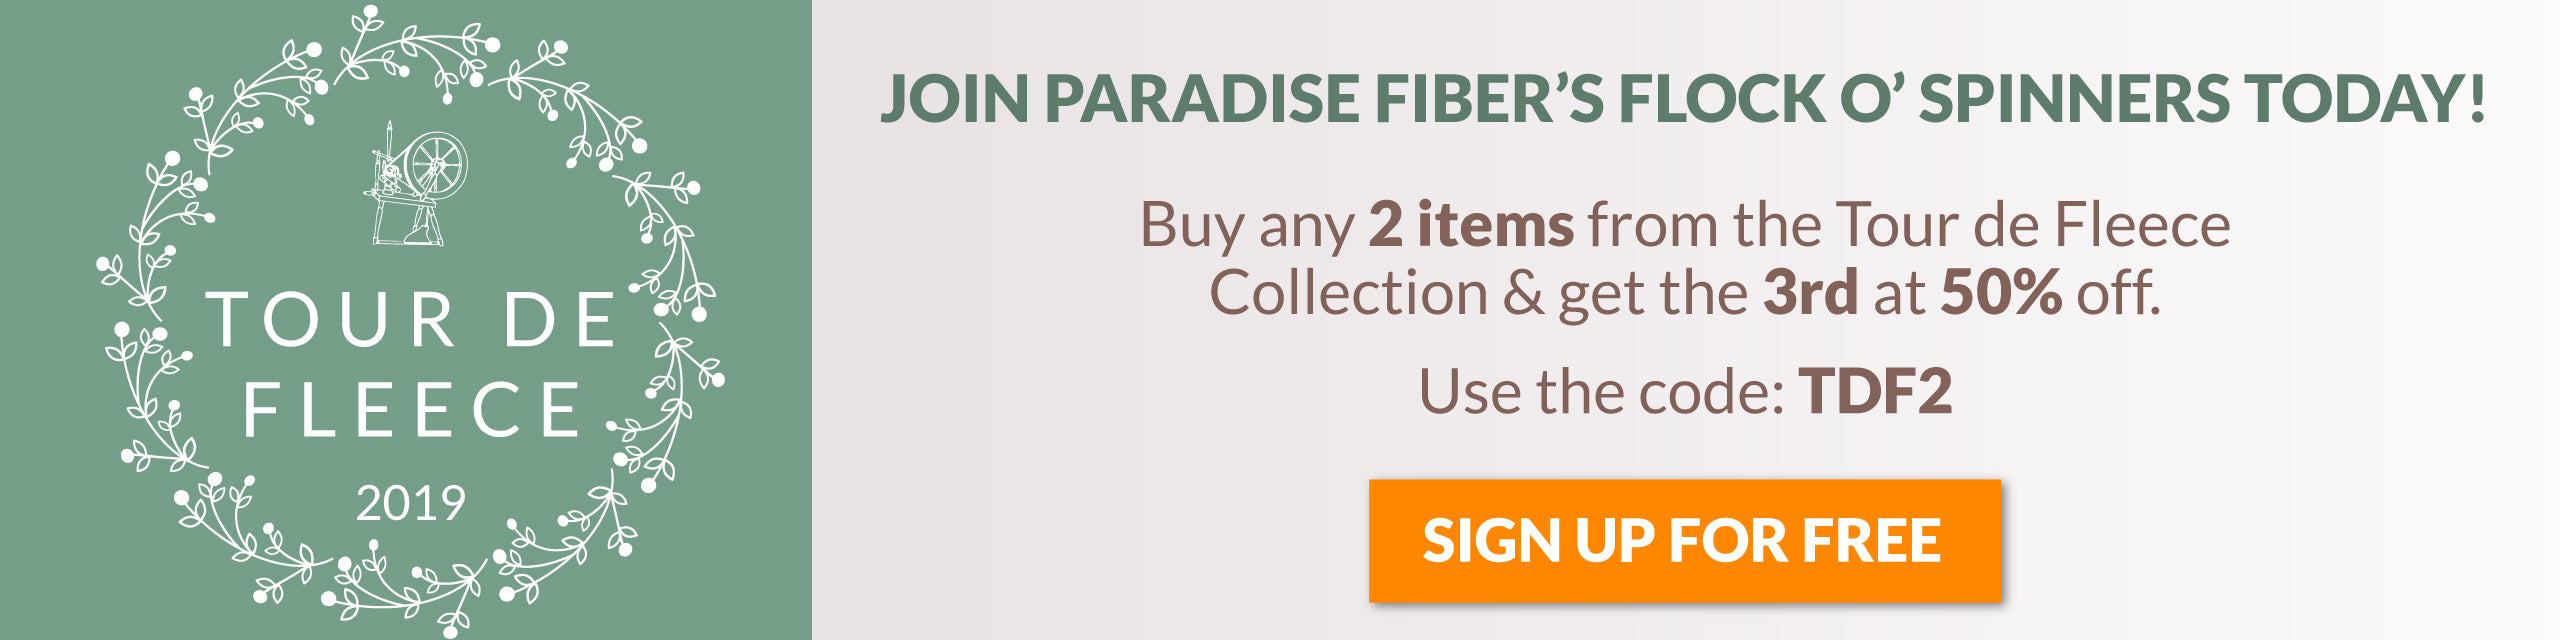 Tour de Fleece 2019. Join Paradise Fibers Flock O' Spinners today! Buy any 2 items from this collection & get the 3rd at 50% off. Use the code: TDF2 at checkout. Click to Sign up for free.